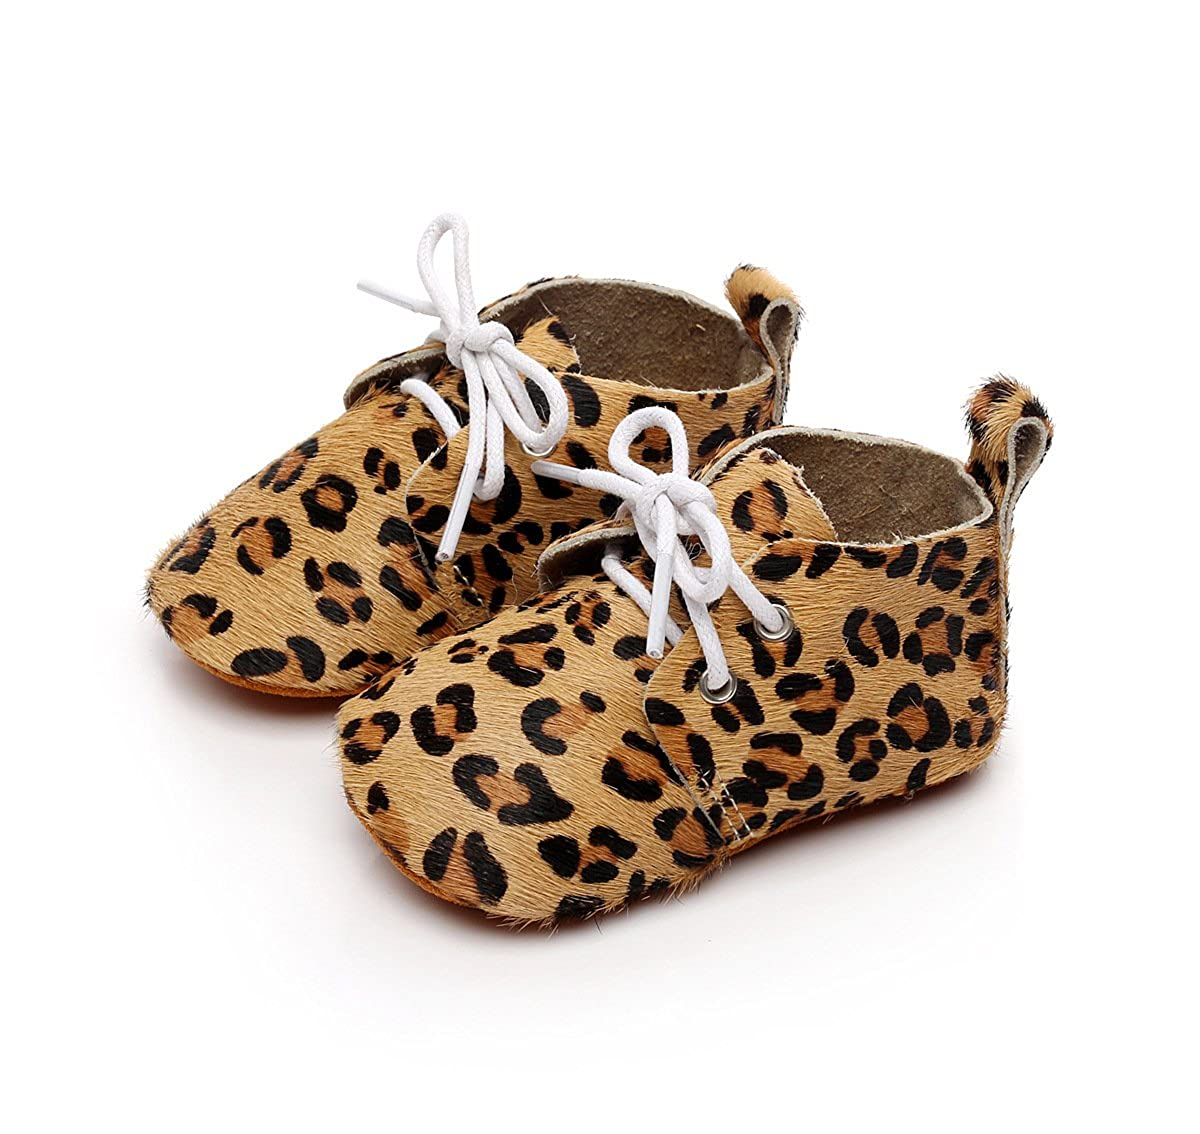 Amazon.com | HONGTEYA Boys Girls Leather Baby Moccasins - Camouflage lace up Toddler Infant Baby Shoes Sneakers | Shoes